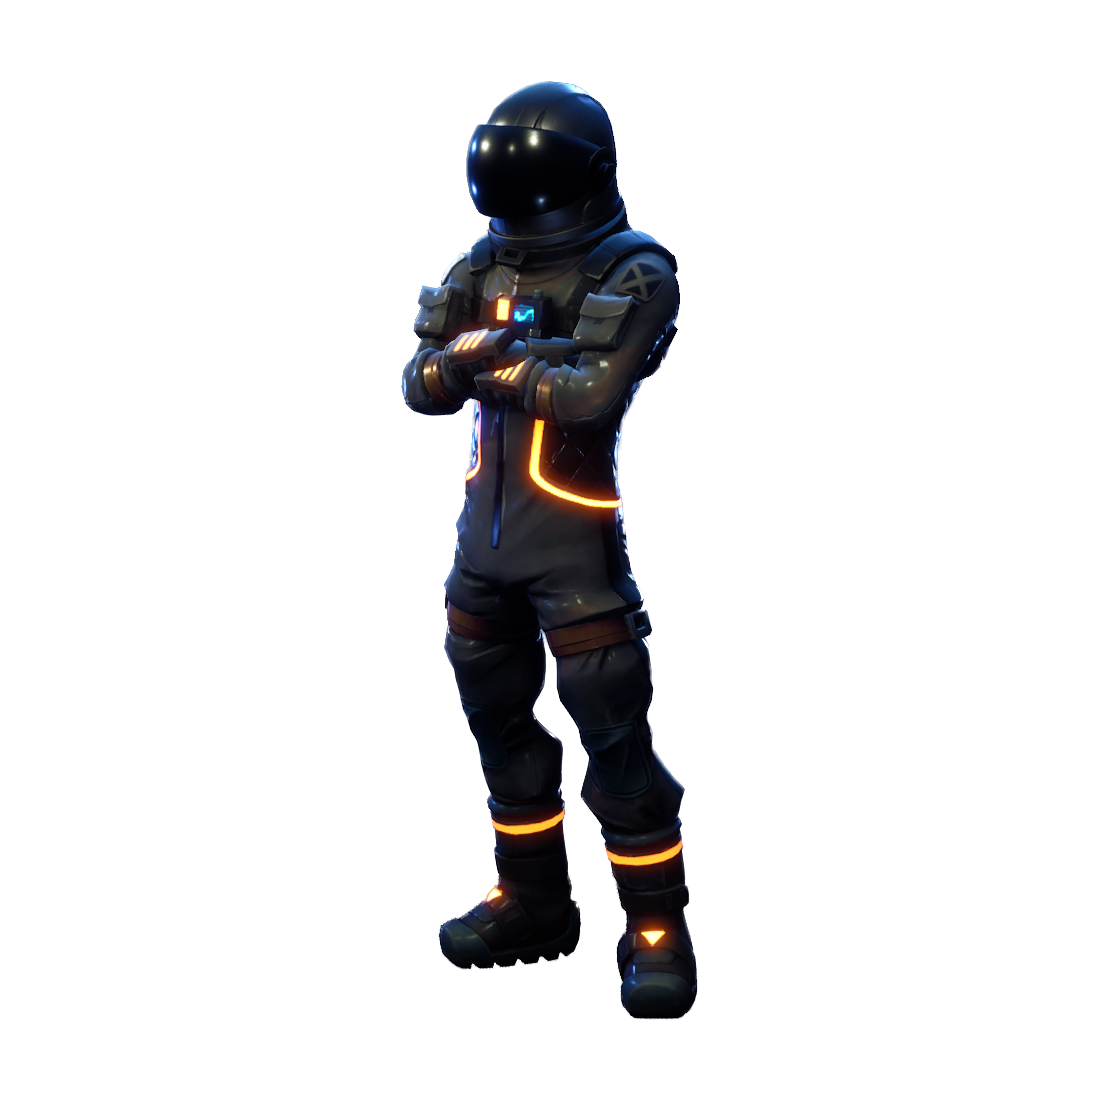 fortnite dark voyager - fortnite dark voyager transparent